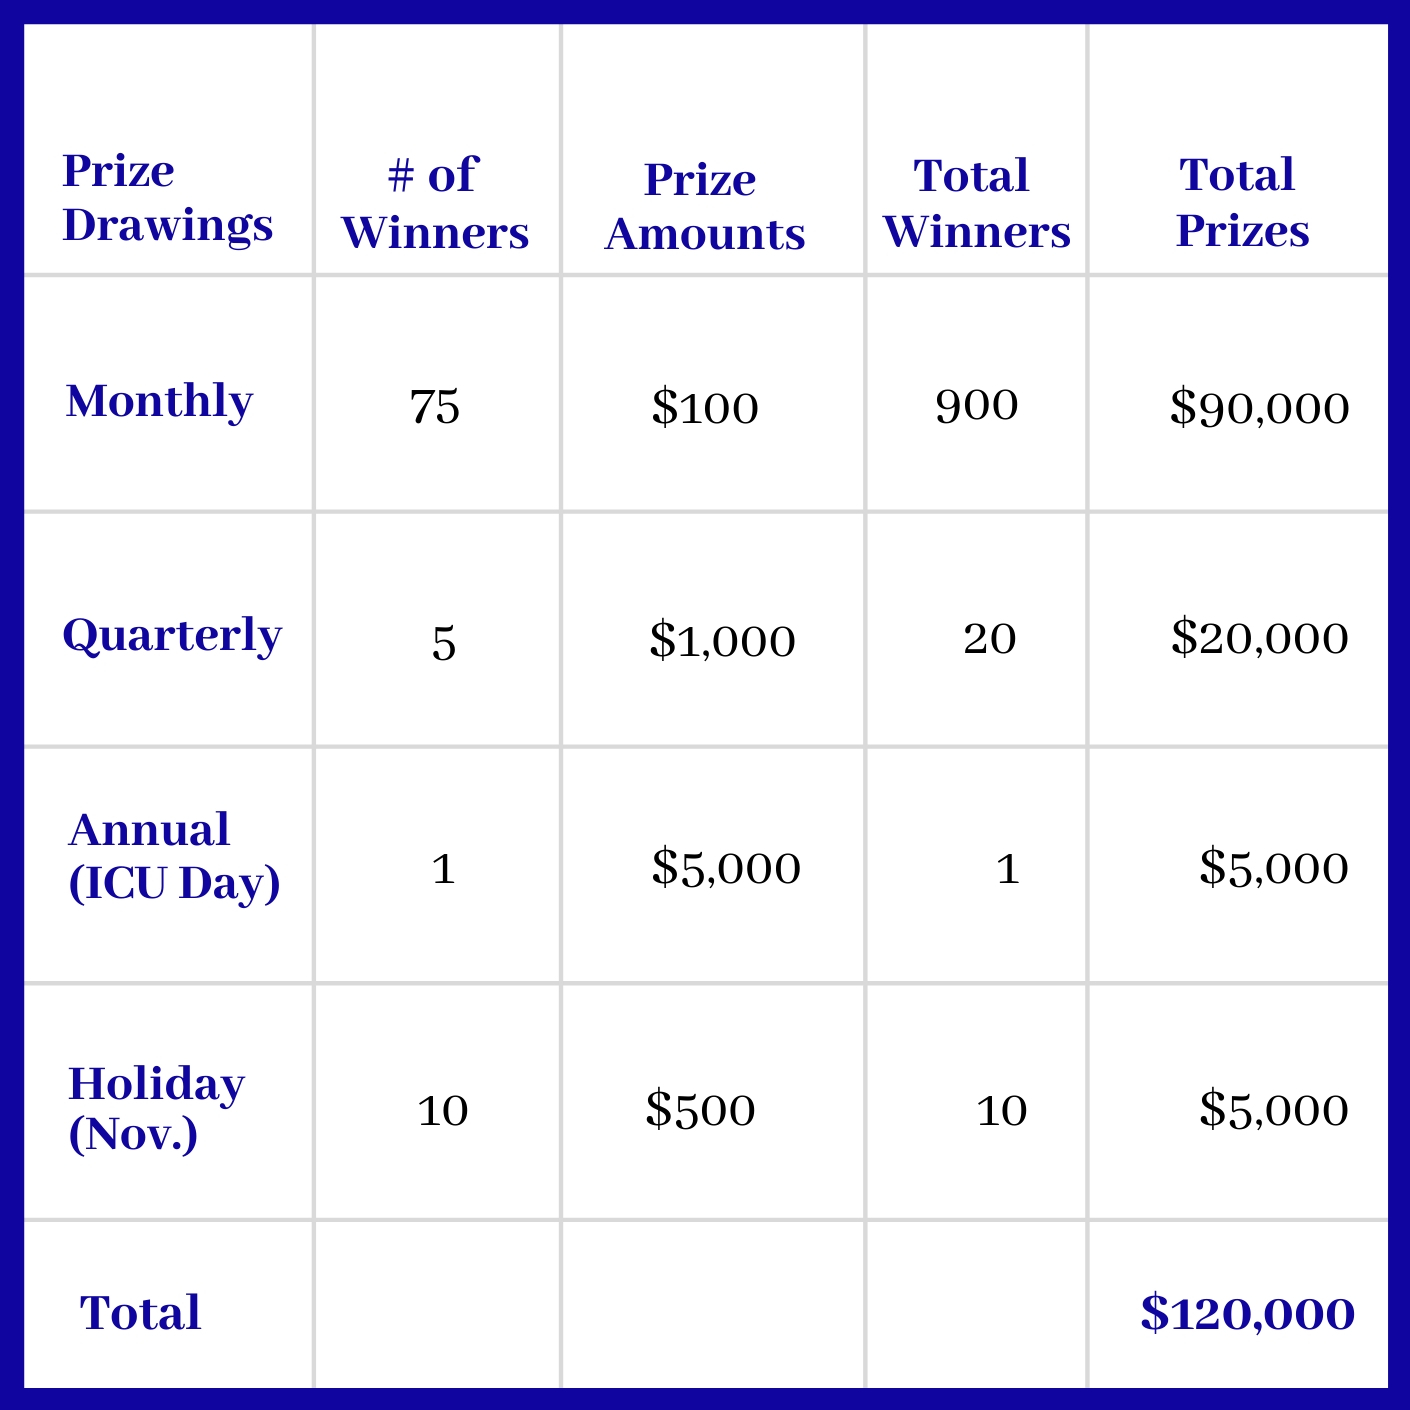 2020 Prize Pool Chart showing that there are seventy-five $100 winners drawn monthly, along with 5 quarterly $1000 winners, in addition to one annual $5000 winner.  New this year; in the month of November, there will be ten additional $500 Holiday winners!  The prize pool currently totals $120,000 given away annually.